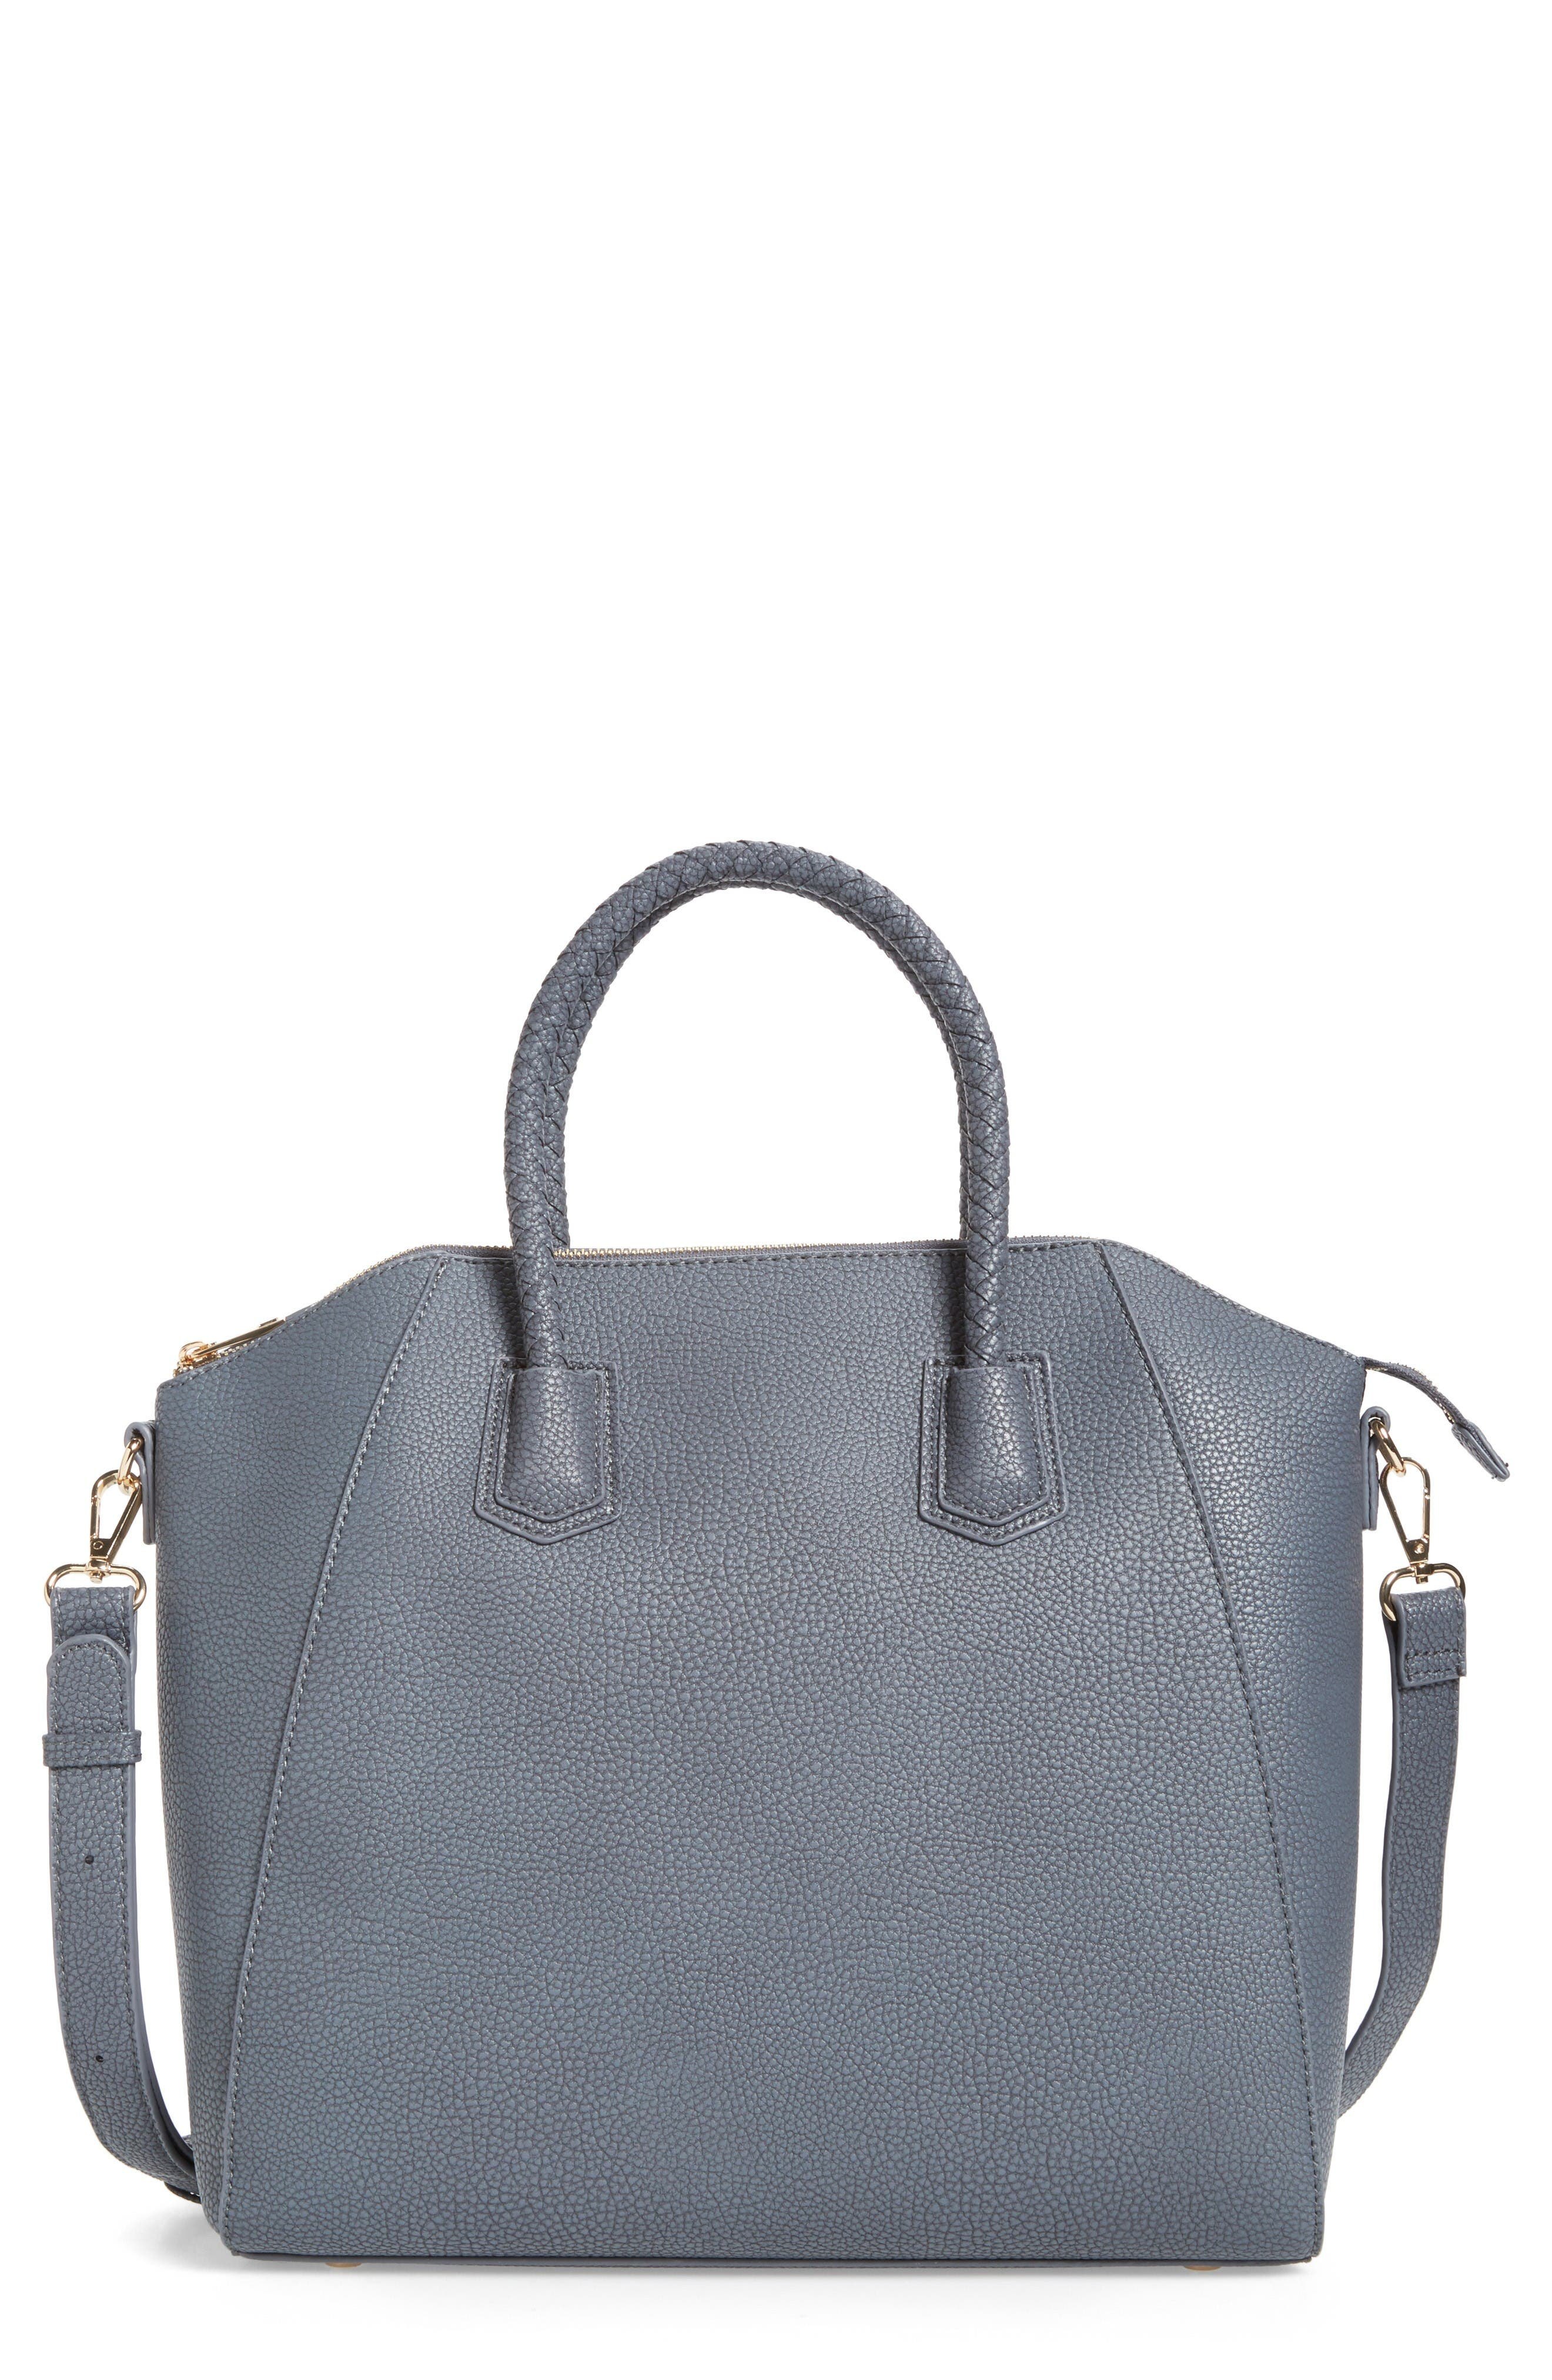 Alternate Image 1 Selected - Sole Society Giada Braided Faux Leather Satchel